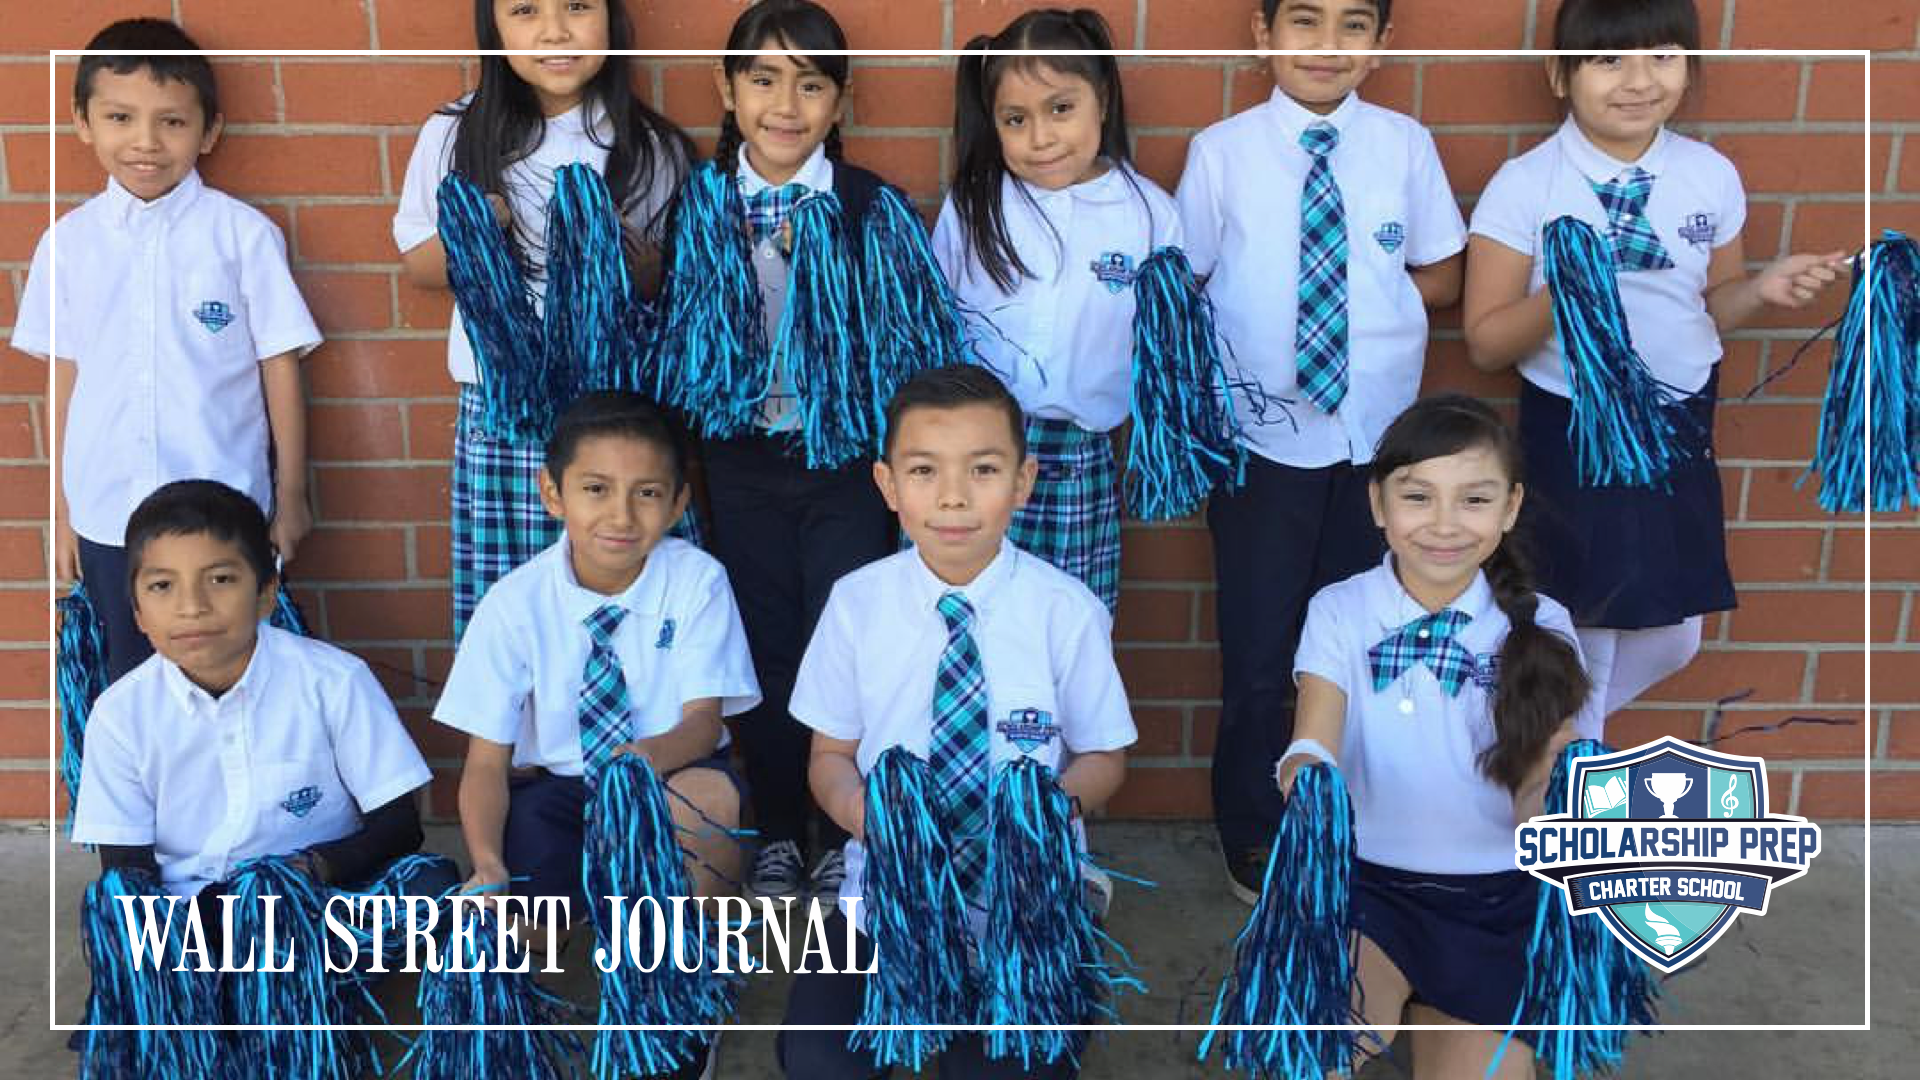 The Wall Street Journal Visits Scholarship Prep